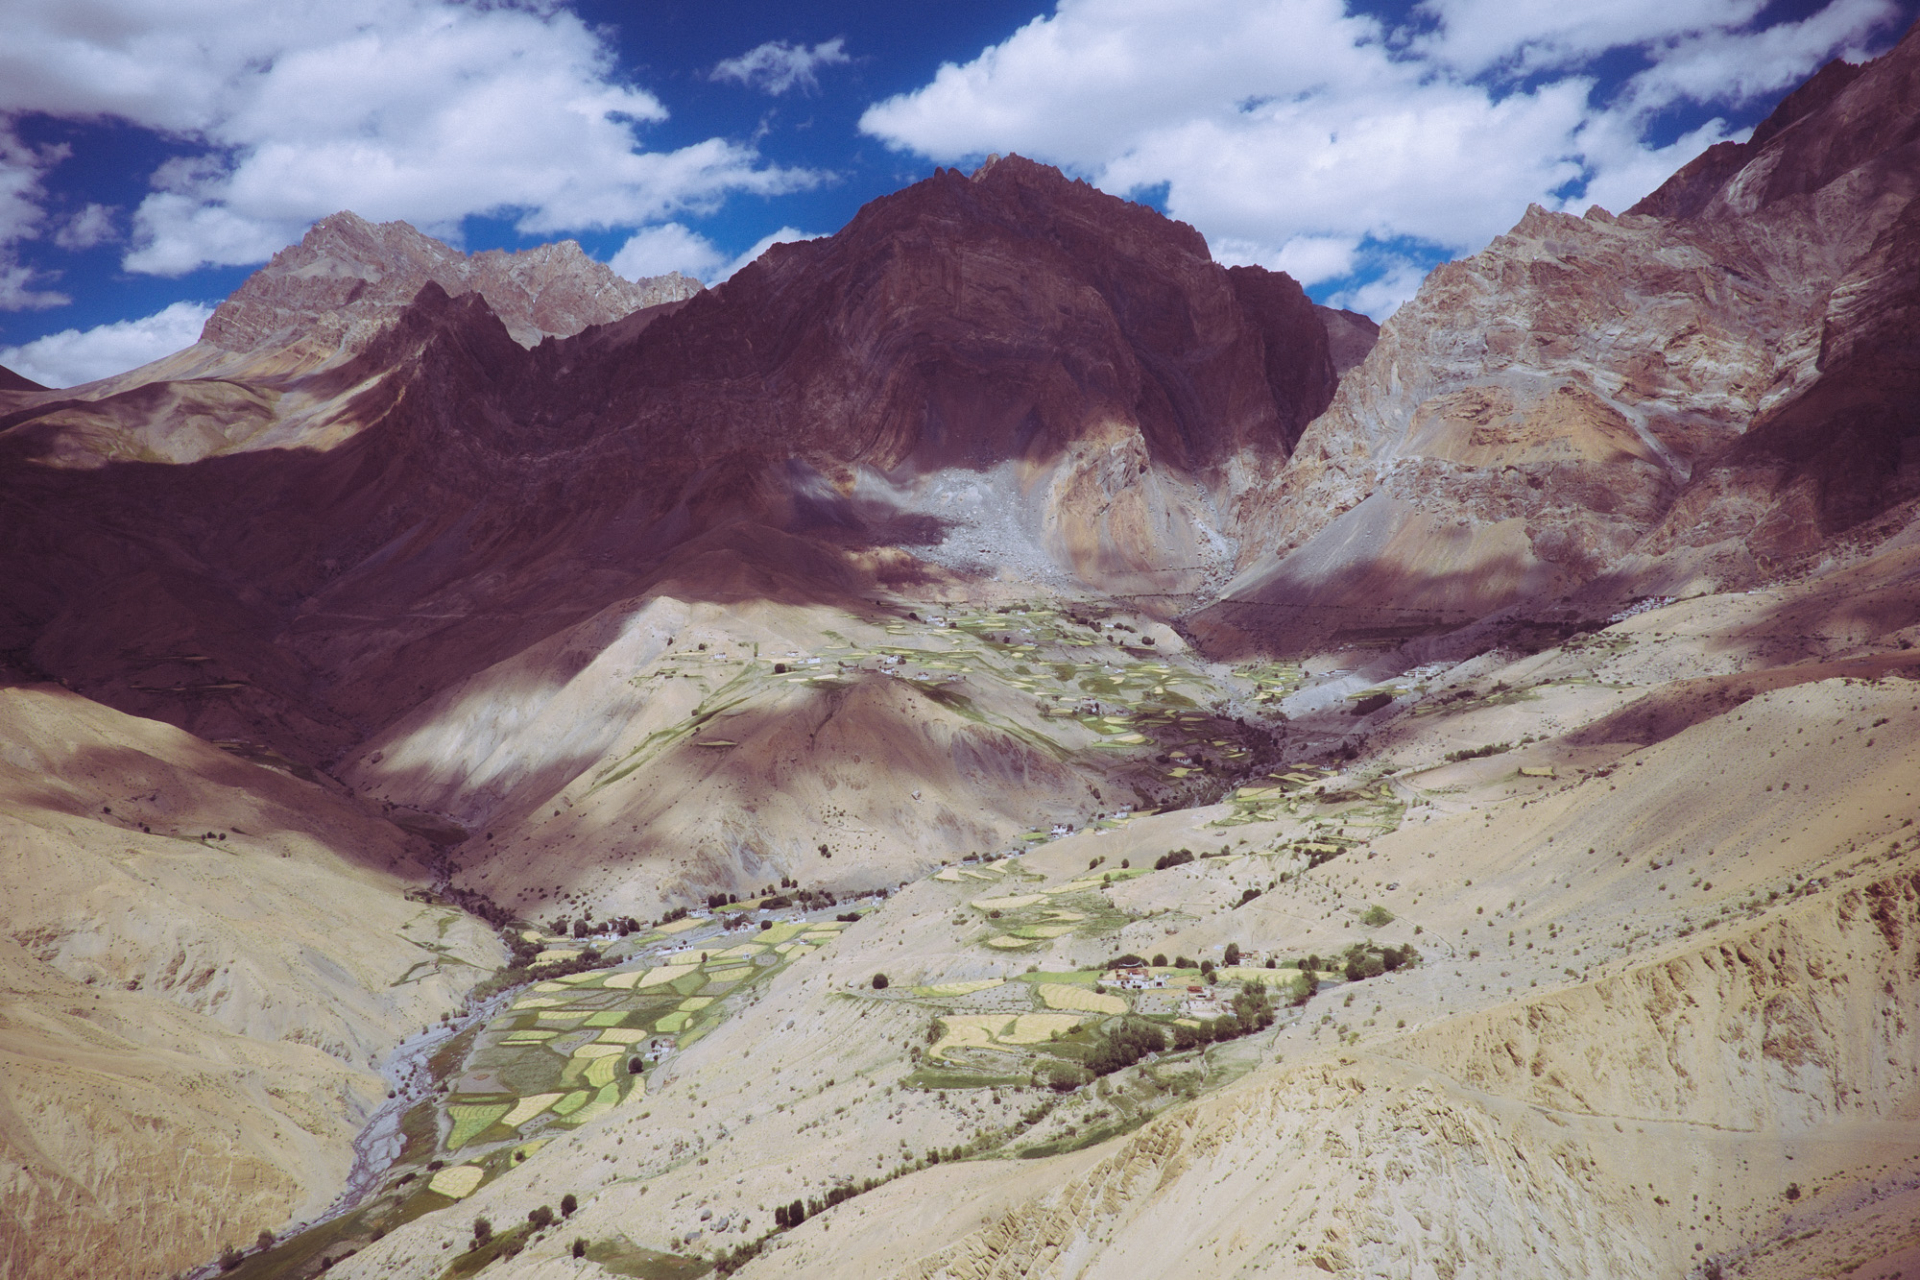 Children of Zanskar 15th Oct '16 — It's Coming!